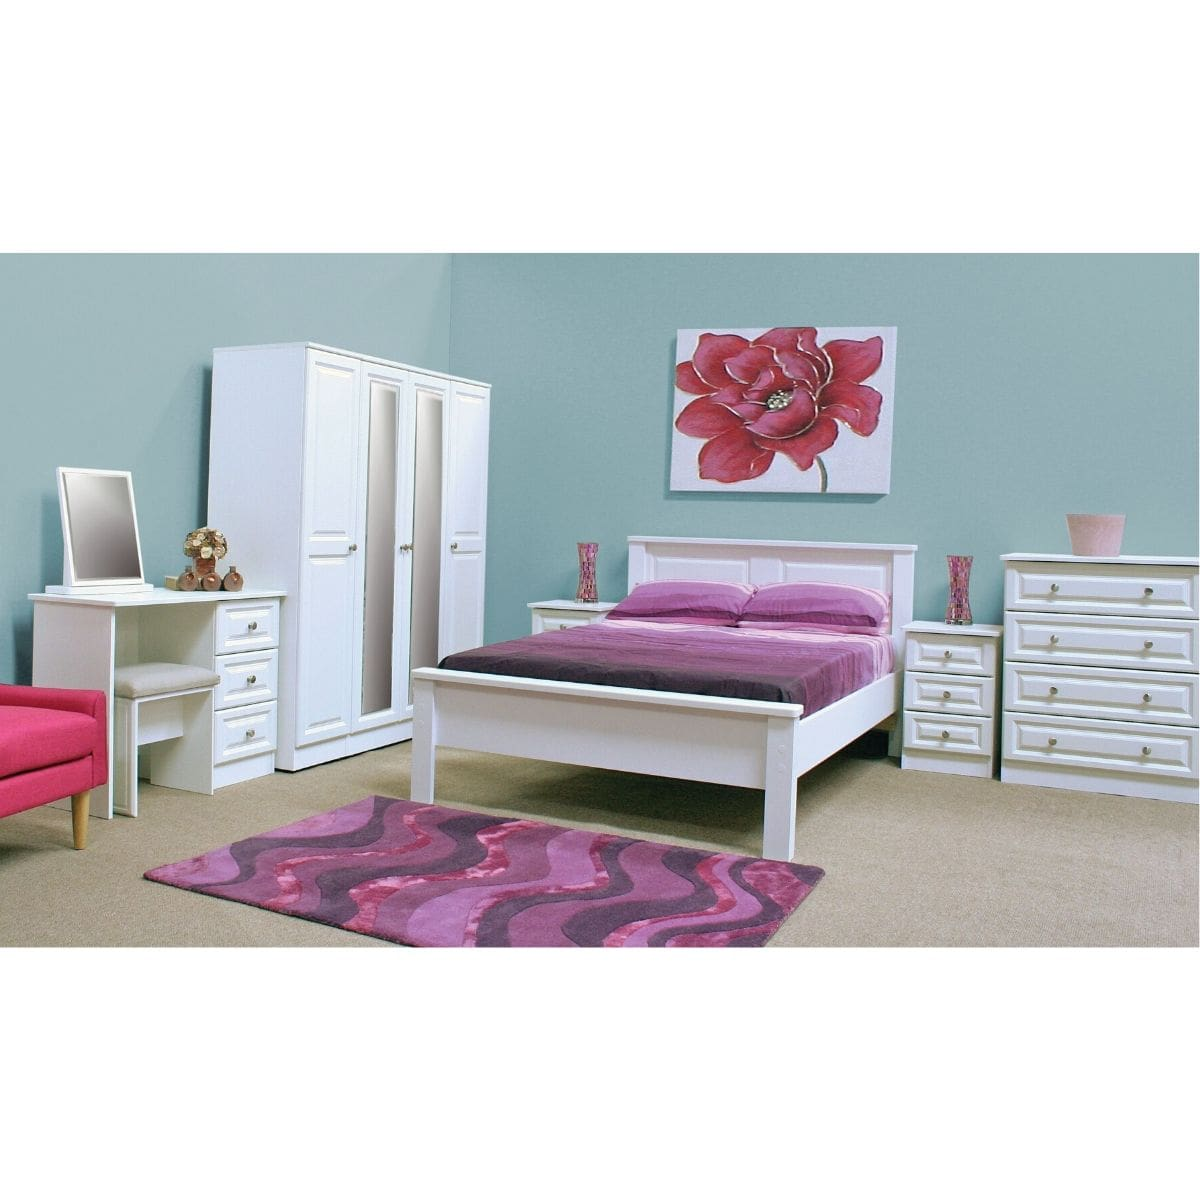 Wales Chest of Drawers White - 7 Options